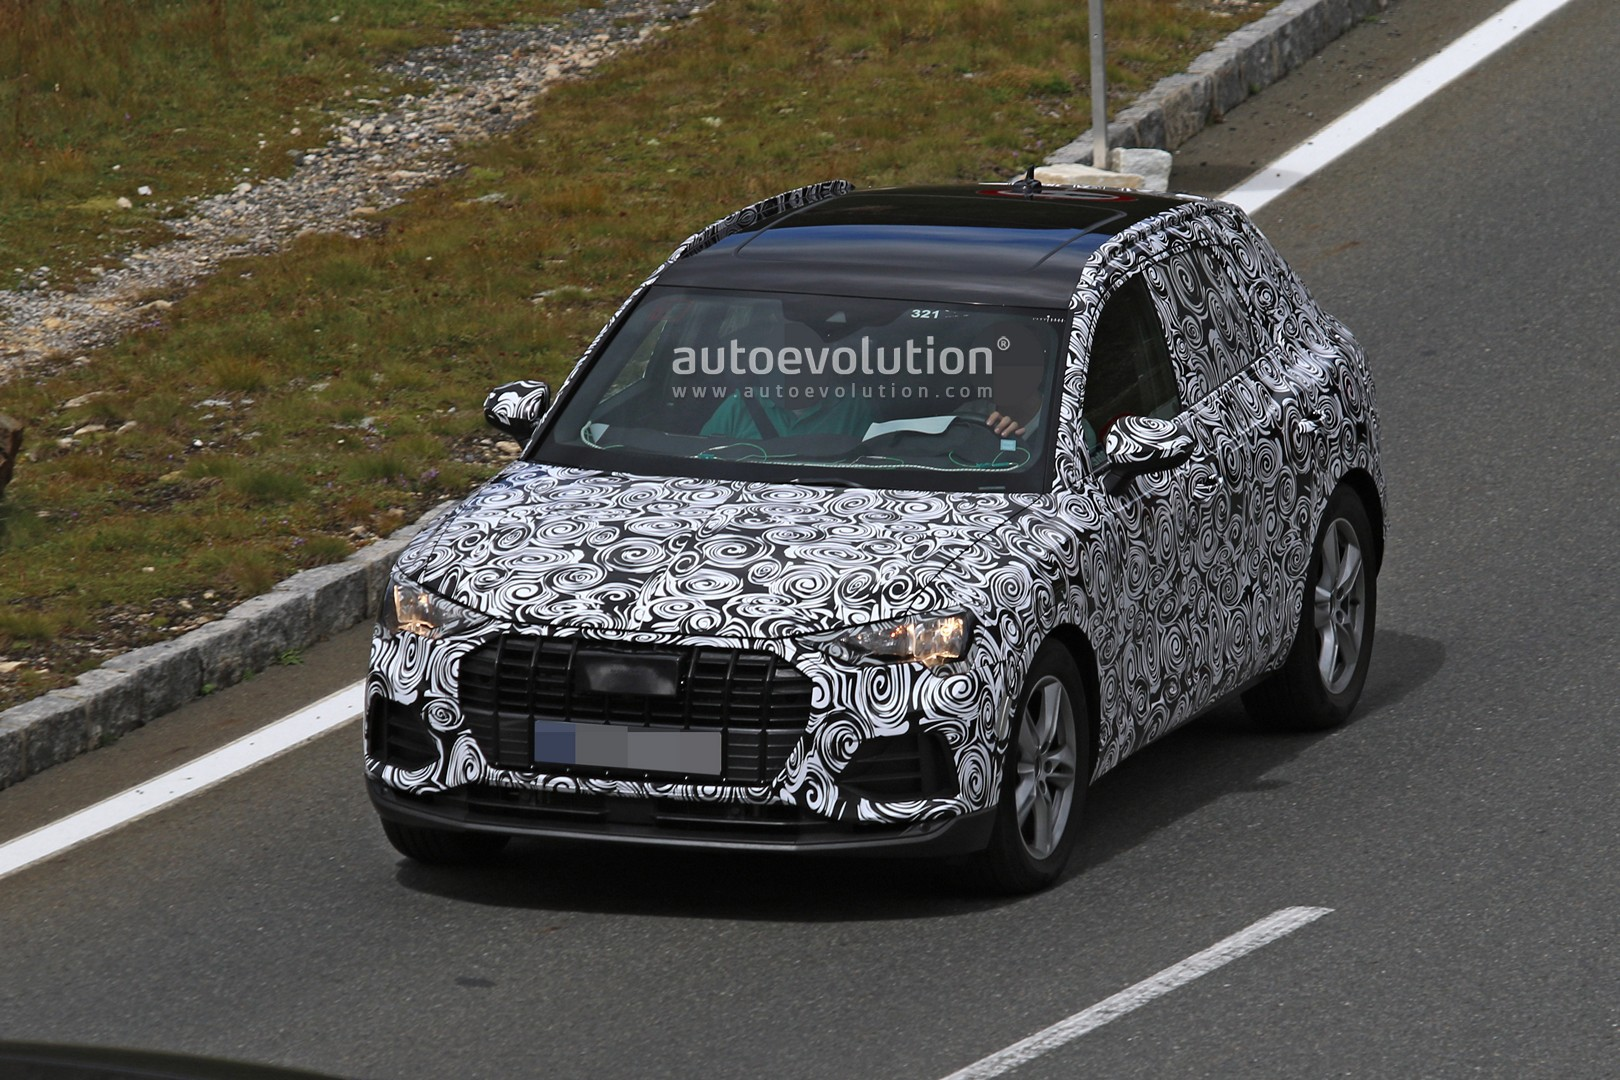 spyshots 2019 audi q3 caught alpine testing shows sporty sportback design autoevolution. Black Bedroom Furniture Sets. Home Design Ideas